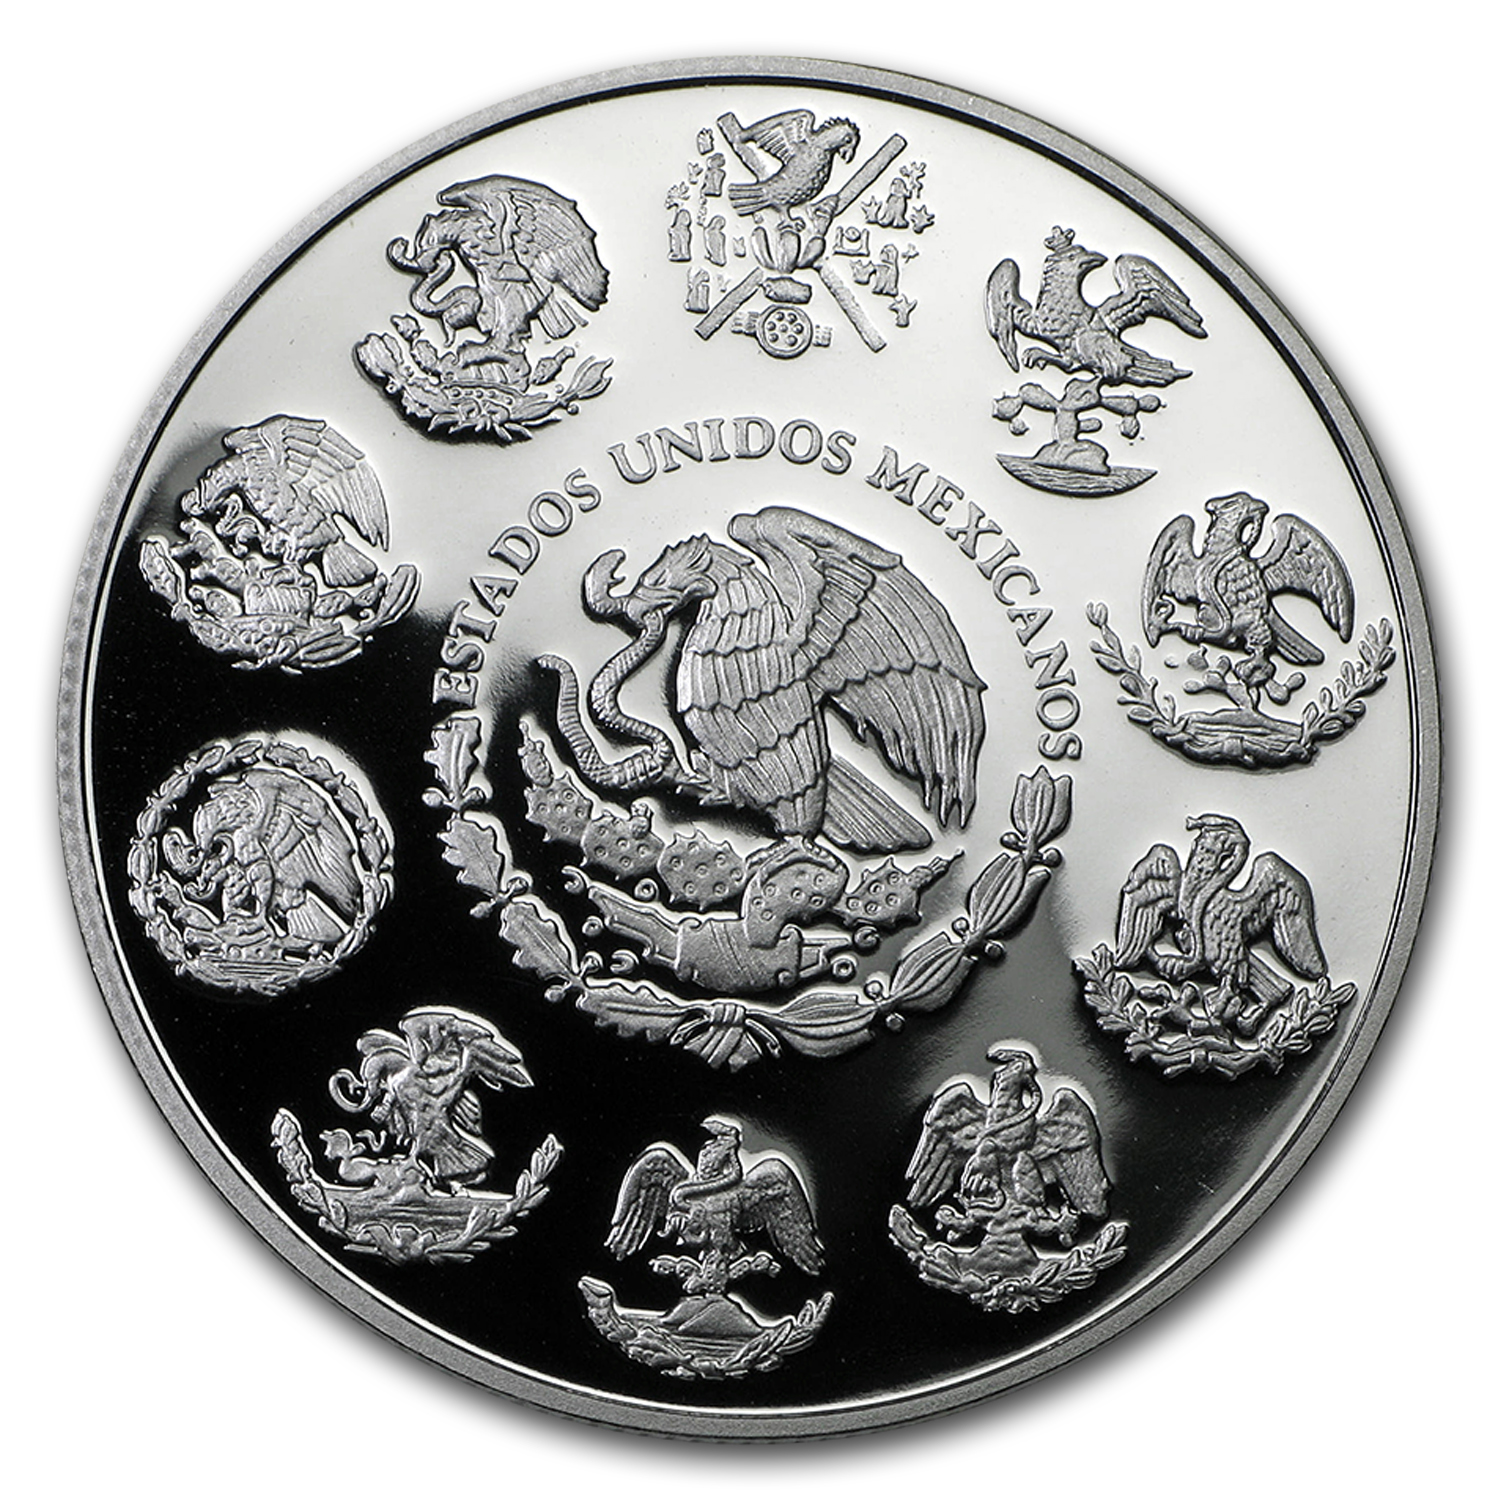 2010 Mexico 1 oz Silver Libertad Proof (In Capsule)